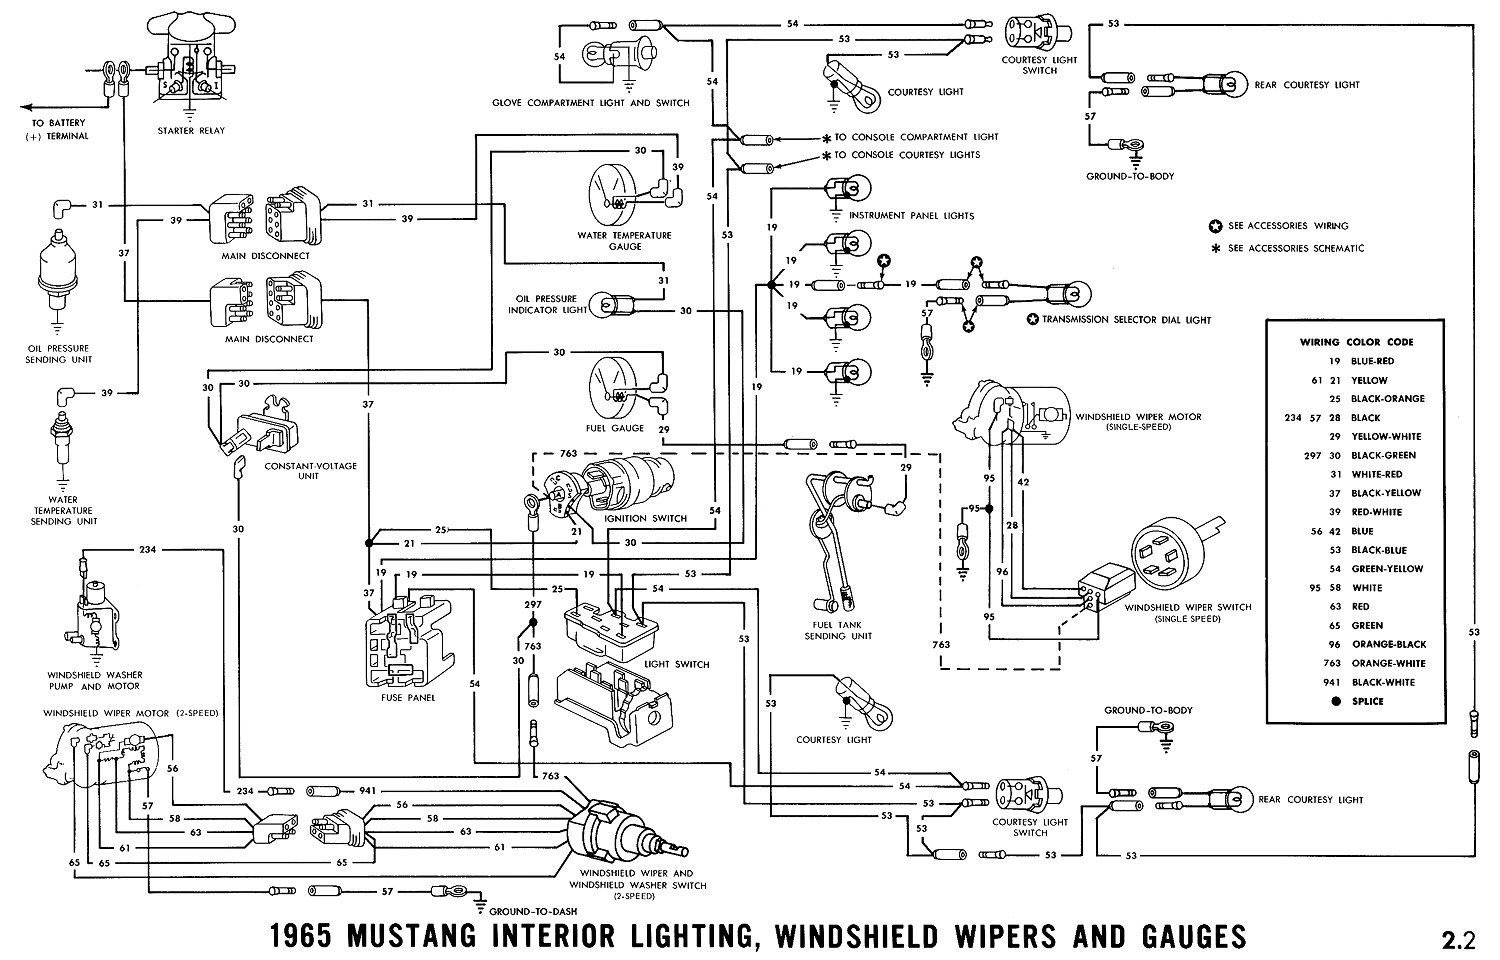 [SCHEMATICS_4FR]  1965 Mustang Wiring Diagrams - Average Joe Restoration | 2013 Mustang Gt Wire Diagram |  | Average Joe Restoration